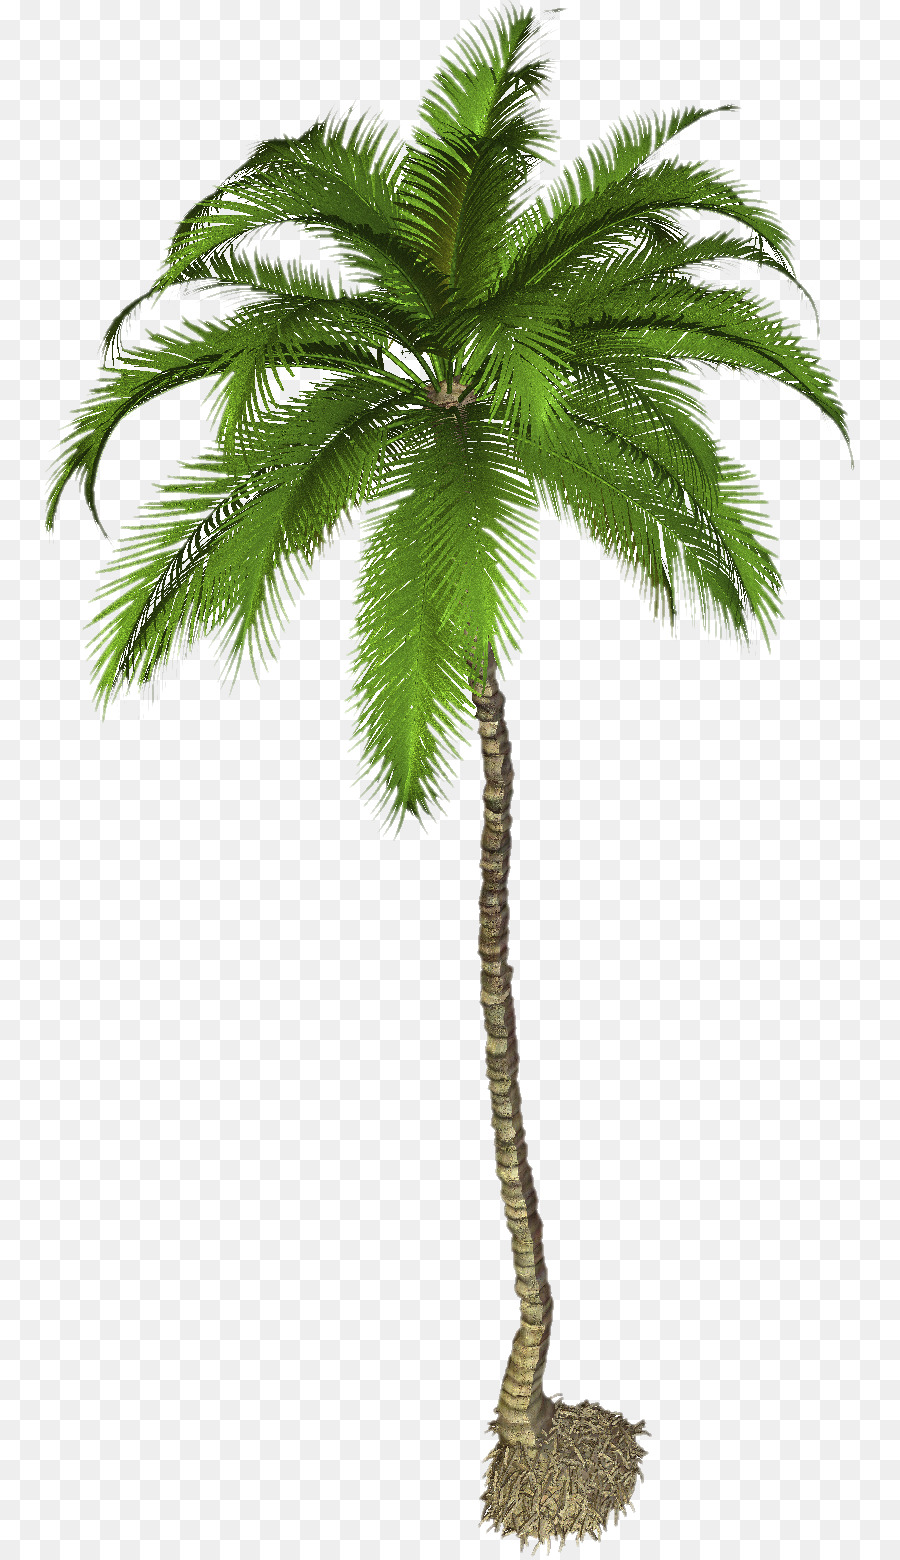 Coconut Tree Cartoon png download - 811*1557 - Free